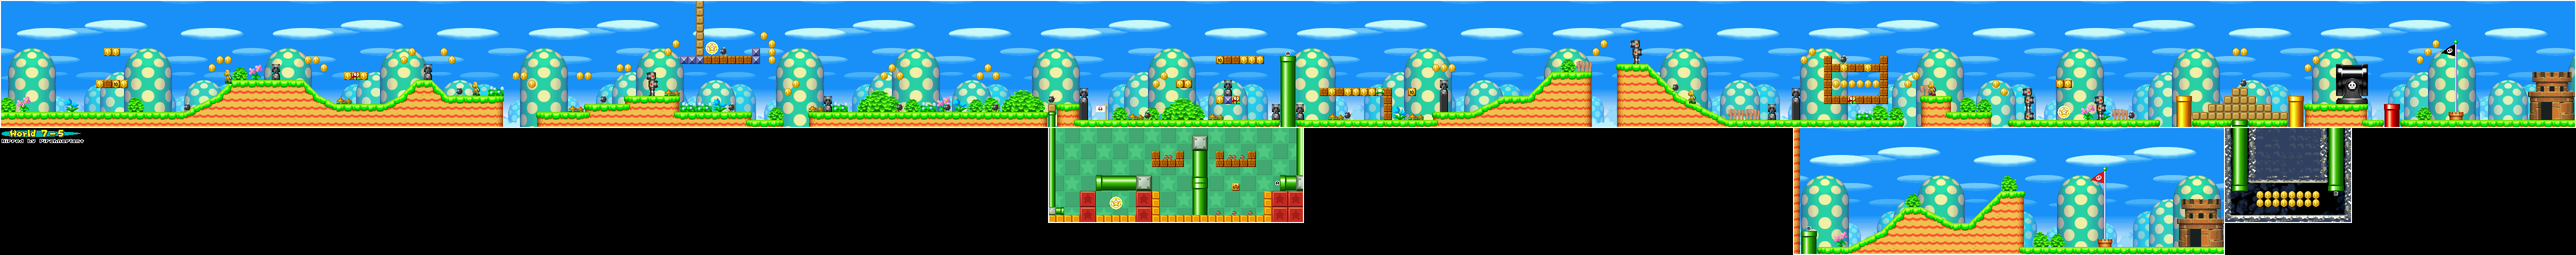 New super mario bros game maps ds 7 5 gumiabroncs Image collections